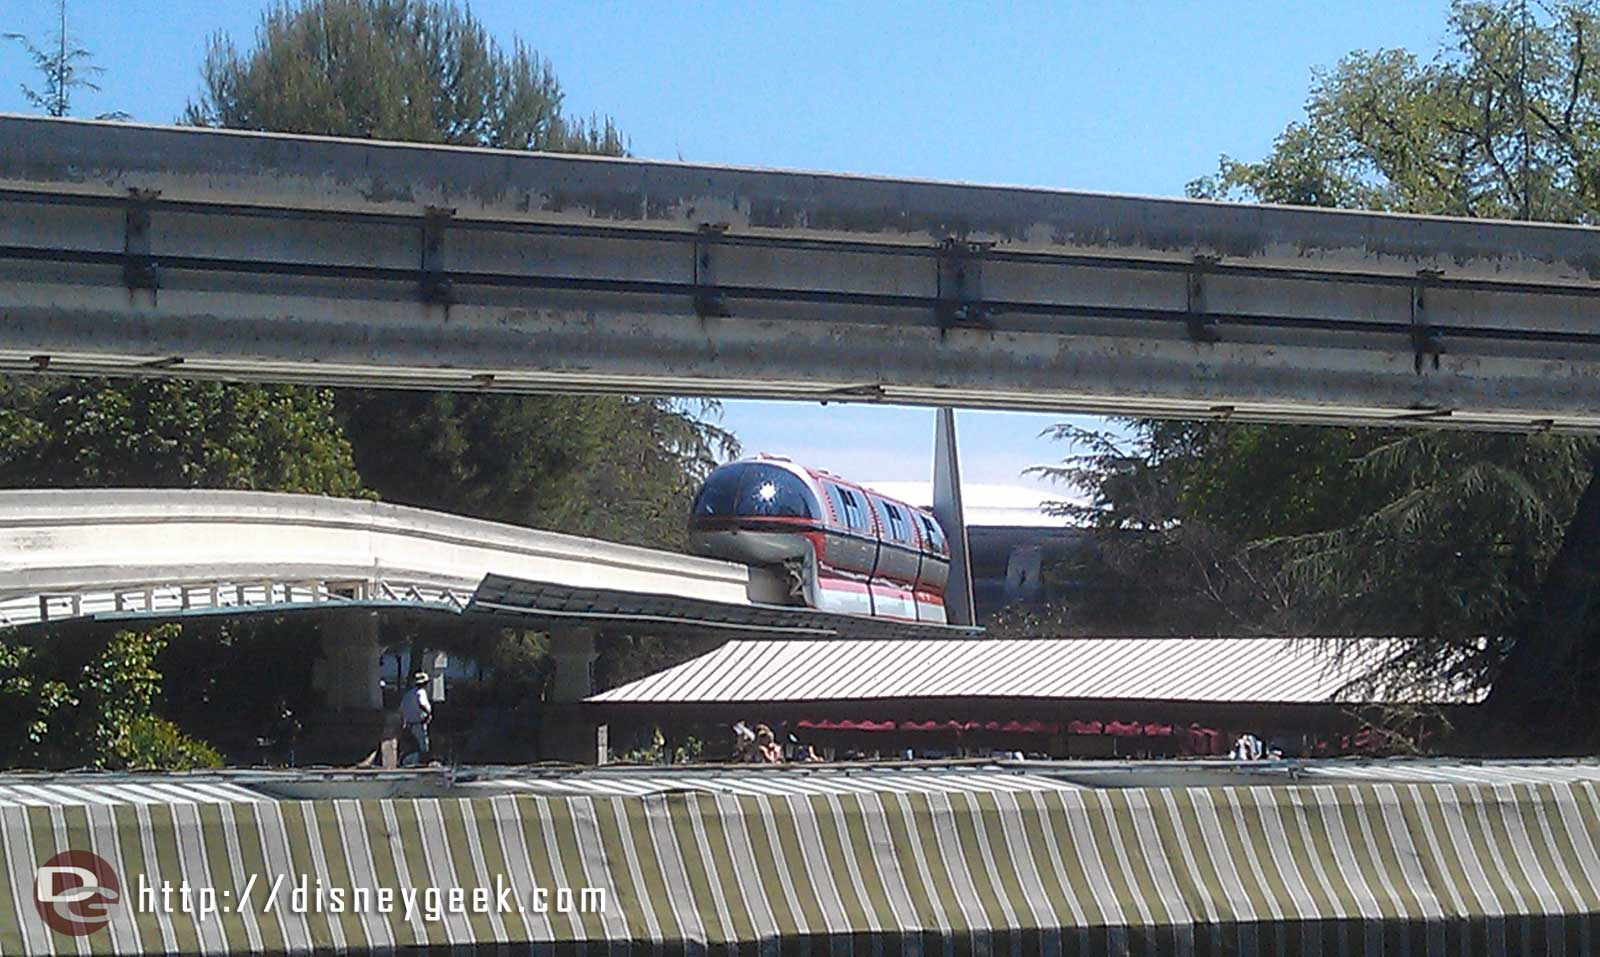 Monorail Orange was stopped near Small World mall, now going backwards with guests onboard, guessing back to DD